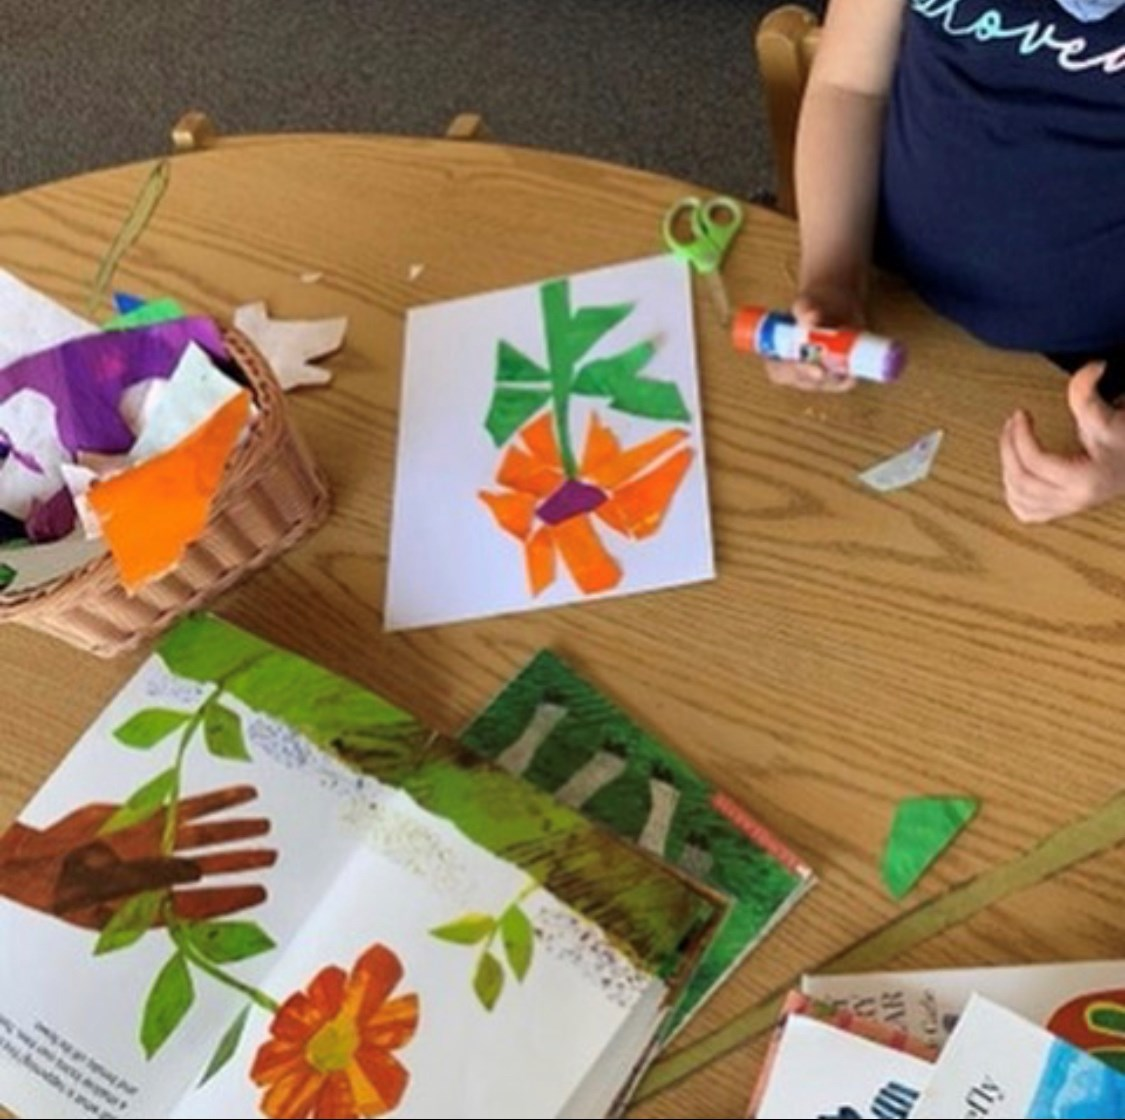 Image of students working on artwork from a story